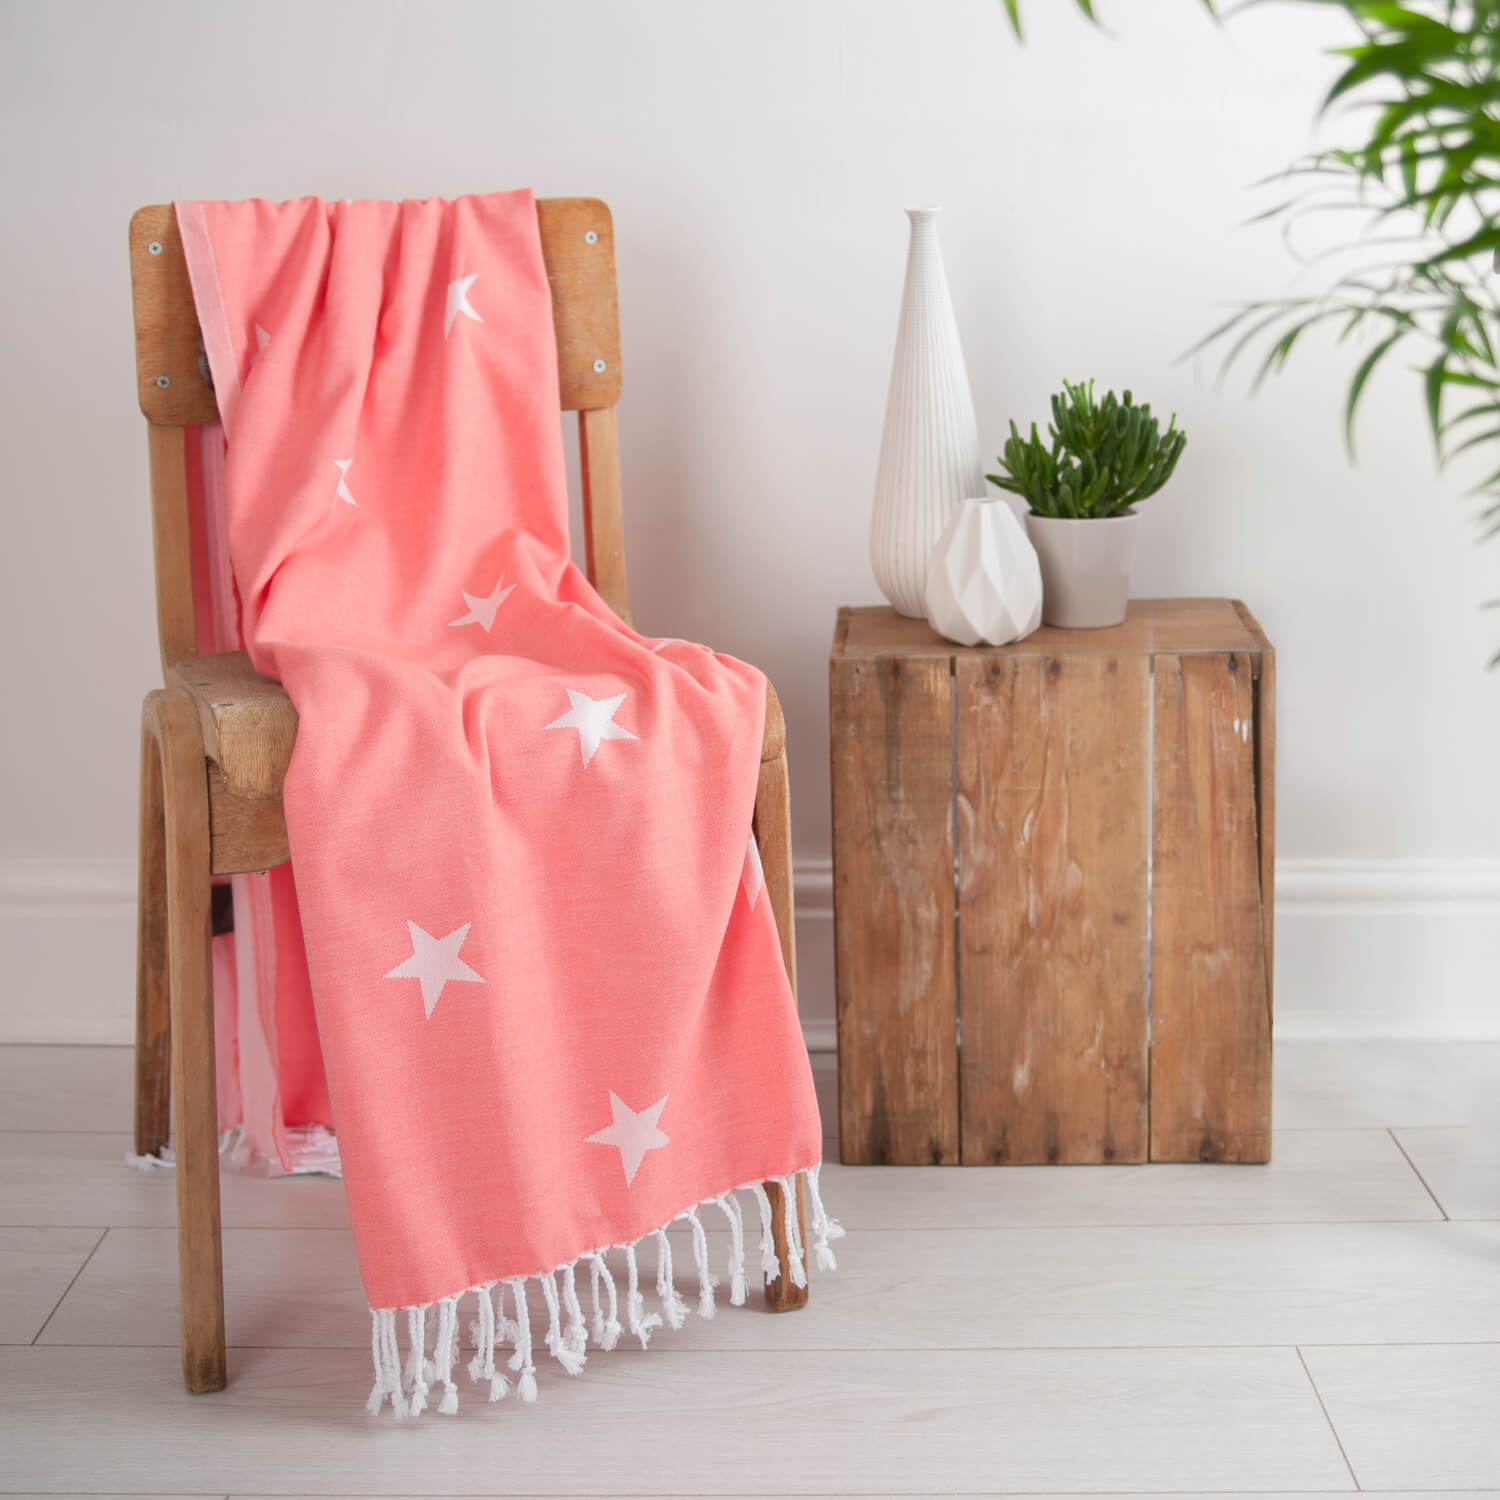 Textile product photography for client Hammam Havlu